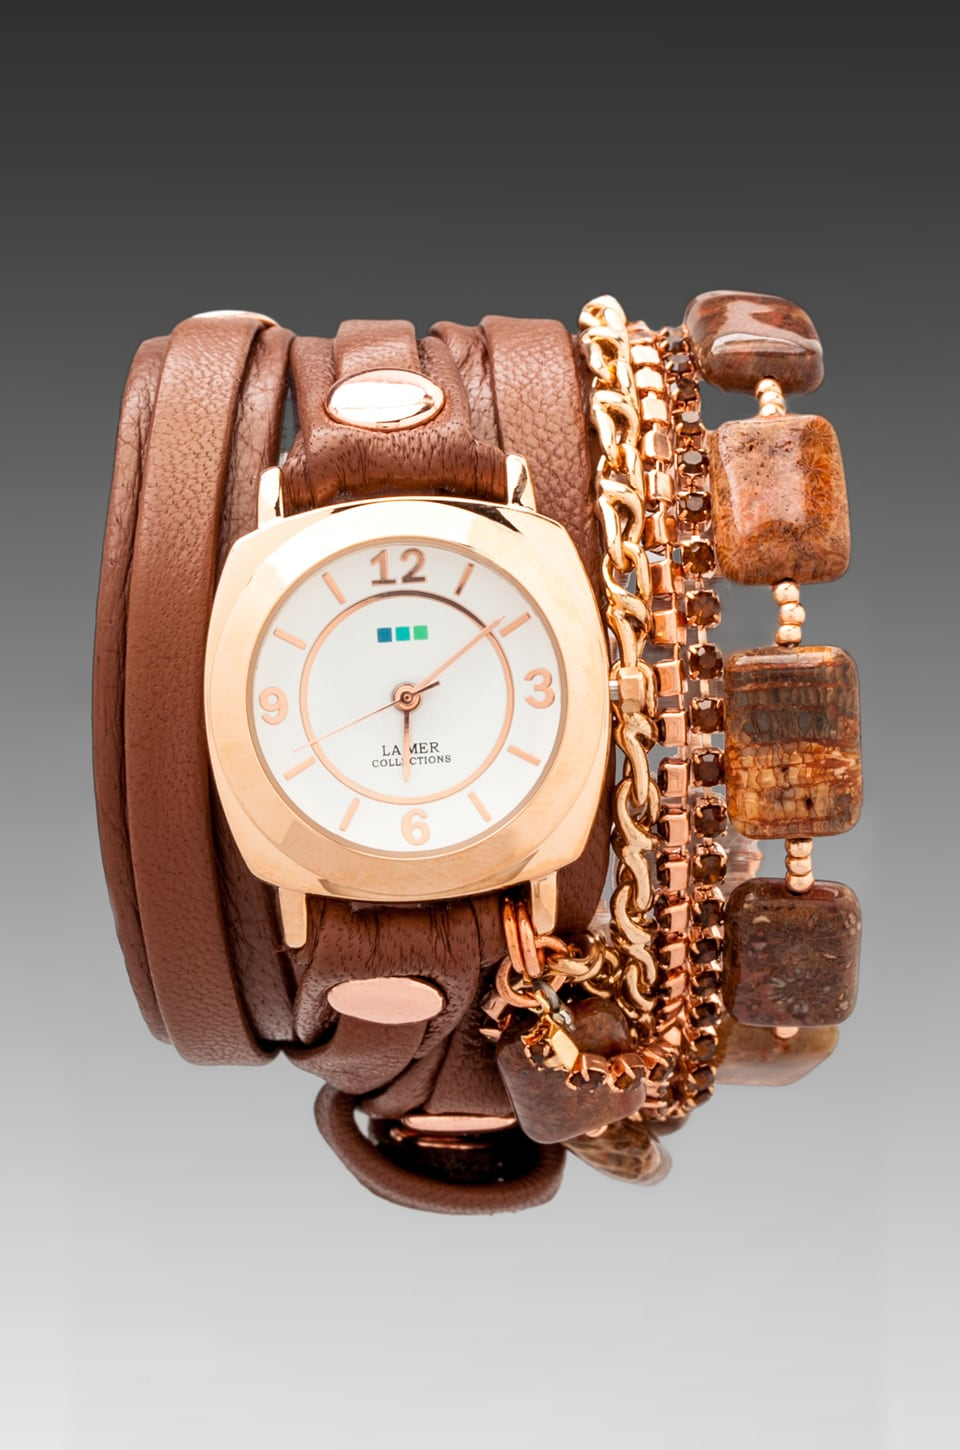 La Mer Red Fossil Coral in Cognac